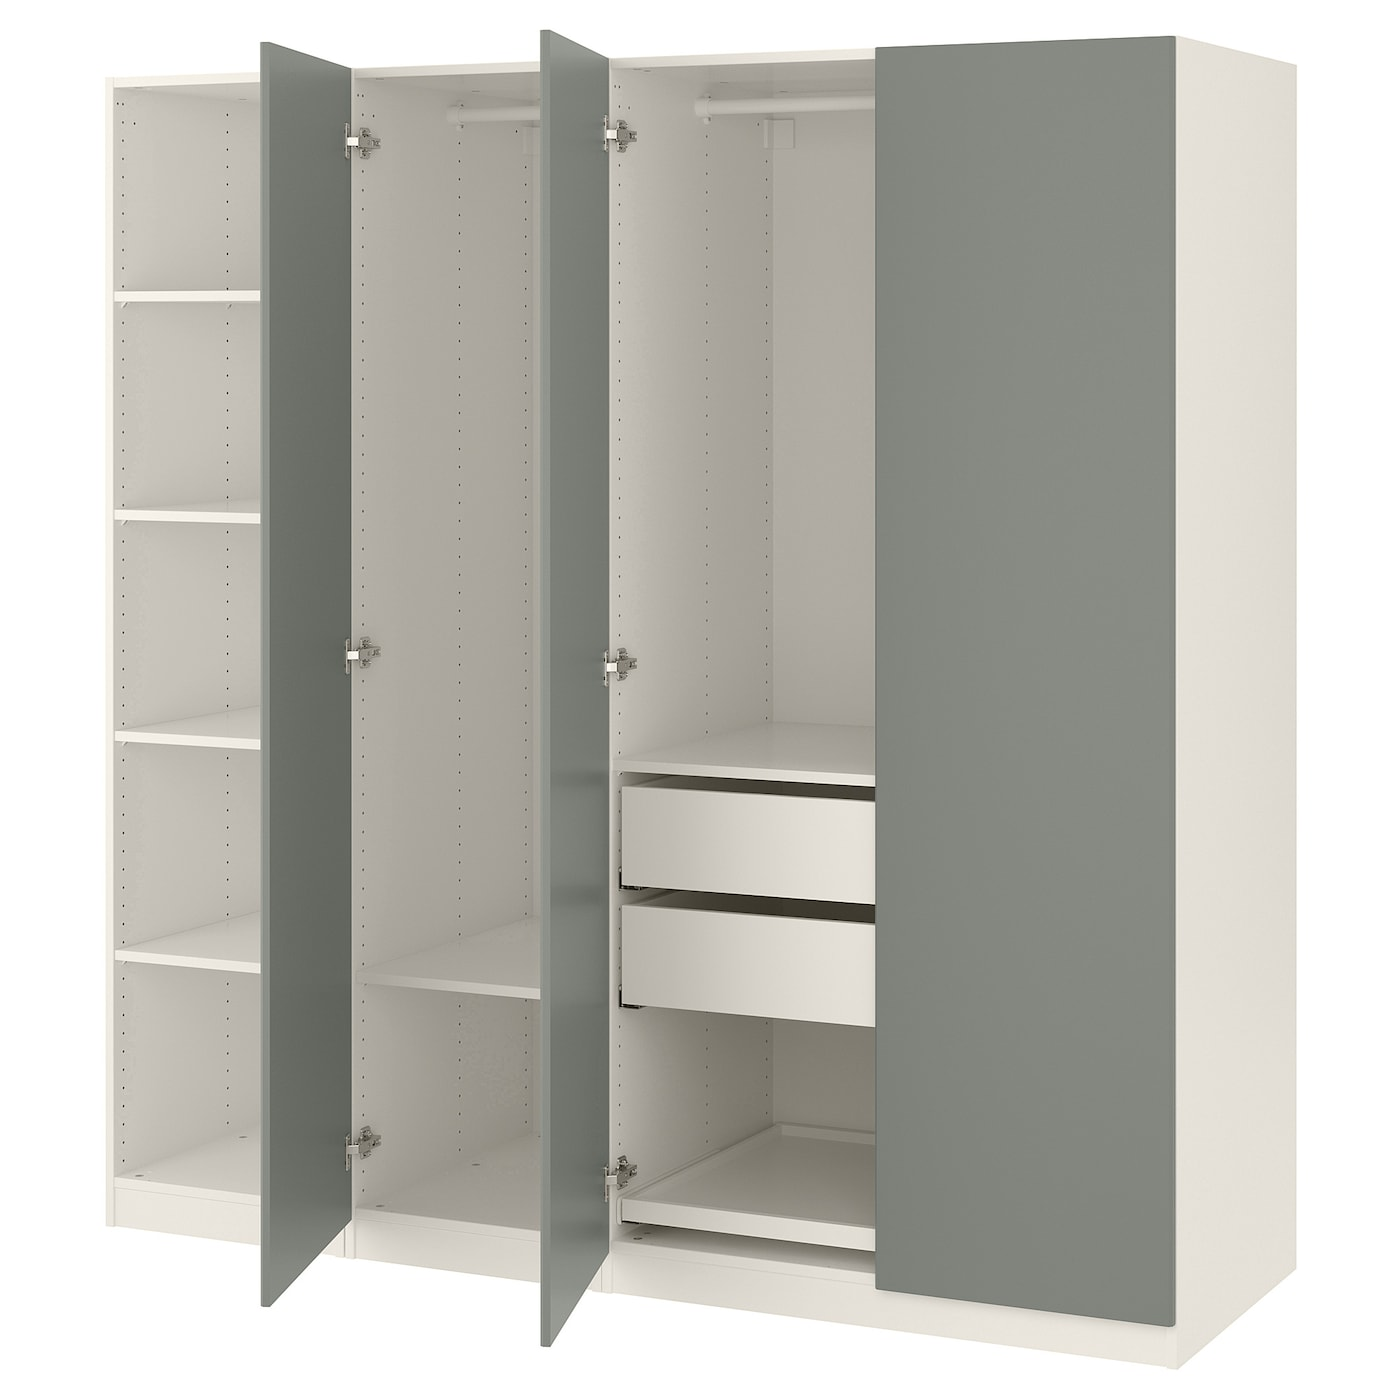 pax armoire penderie blanc reinsvoll gris vert 200 x 60 x 201 cm ikea. Black Bedroom Furniture Sets. Home Design Ideas